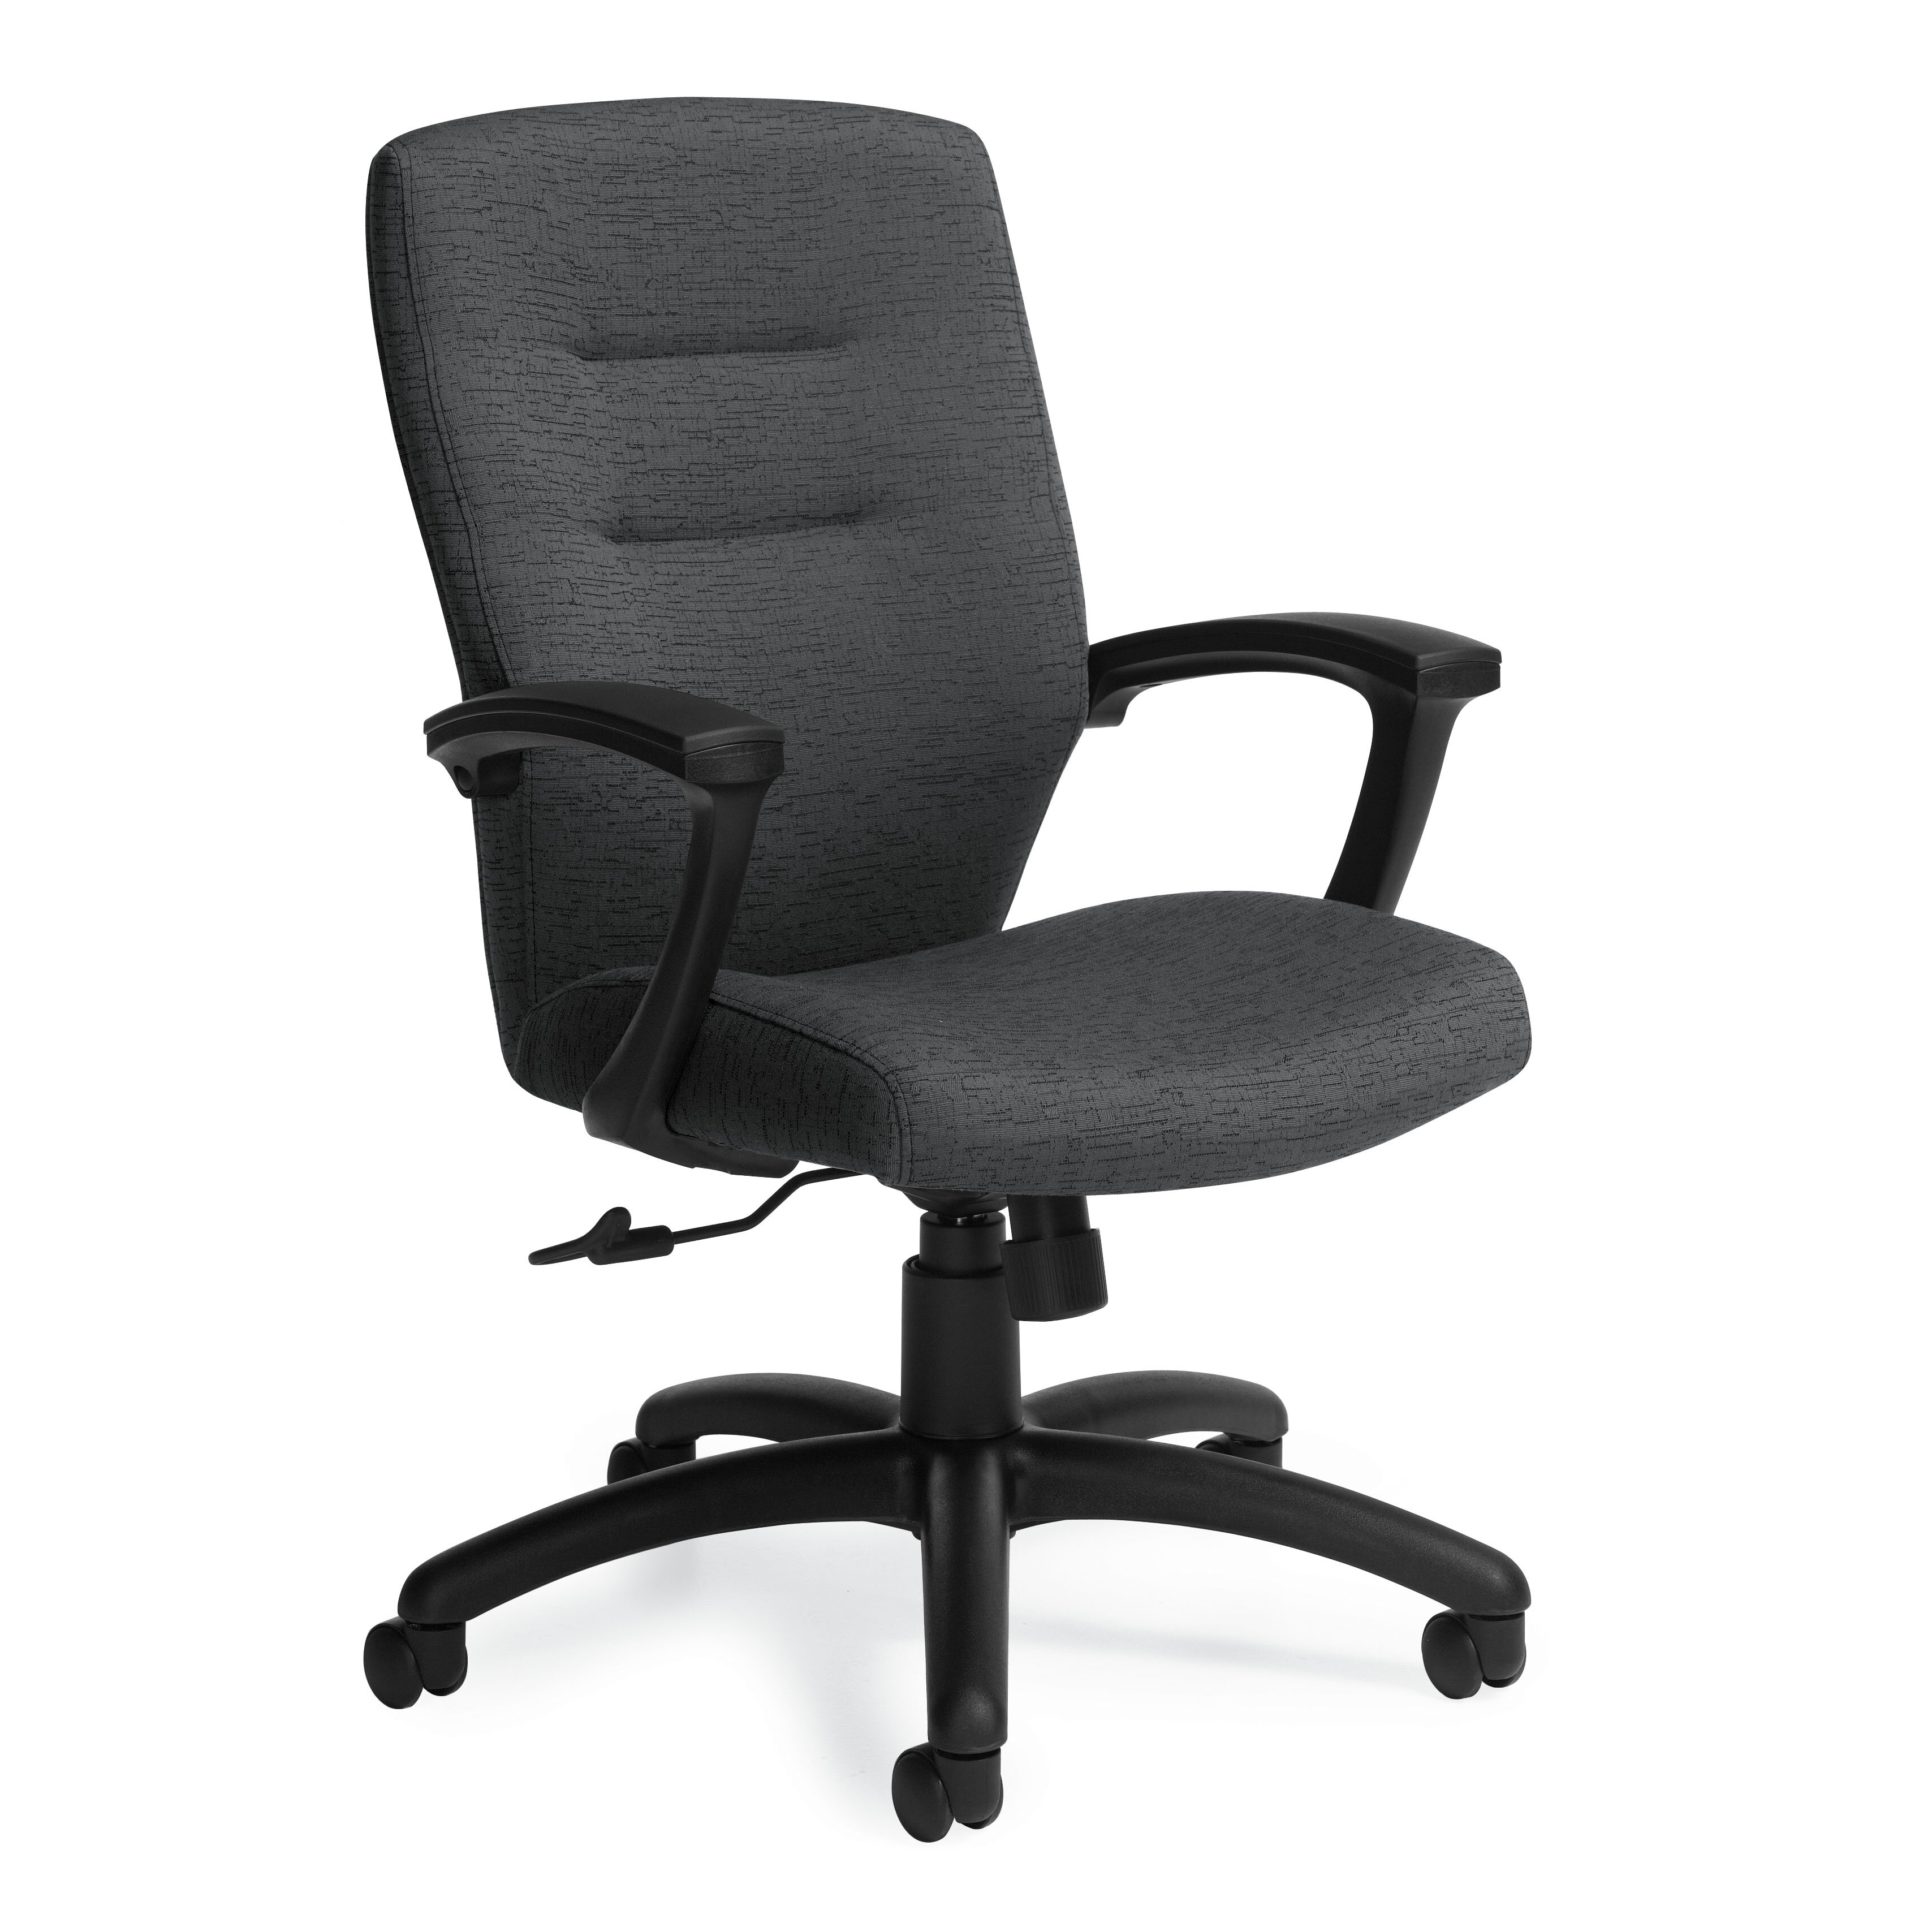 Synopsis Mid Back fice Chair with Fixed Back